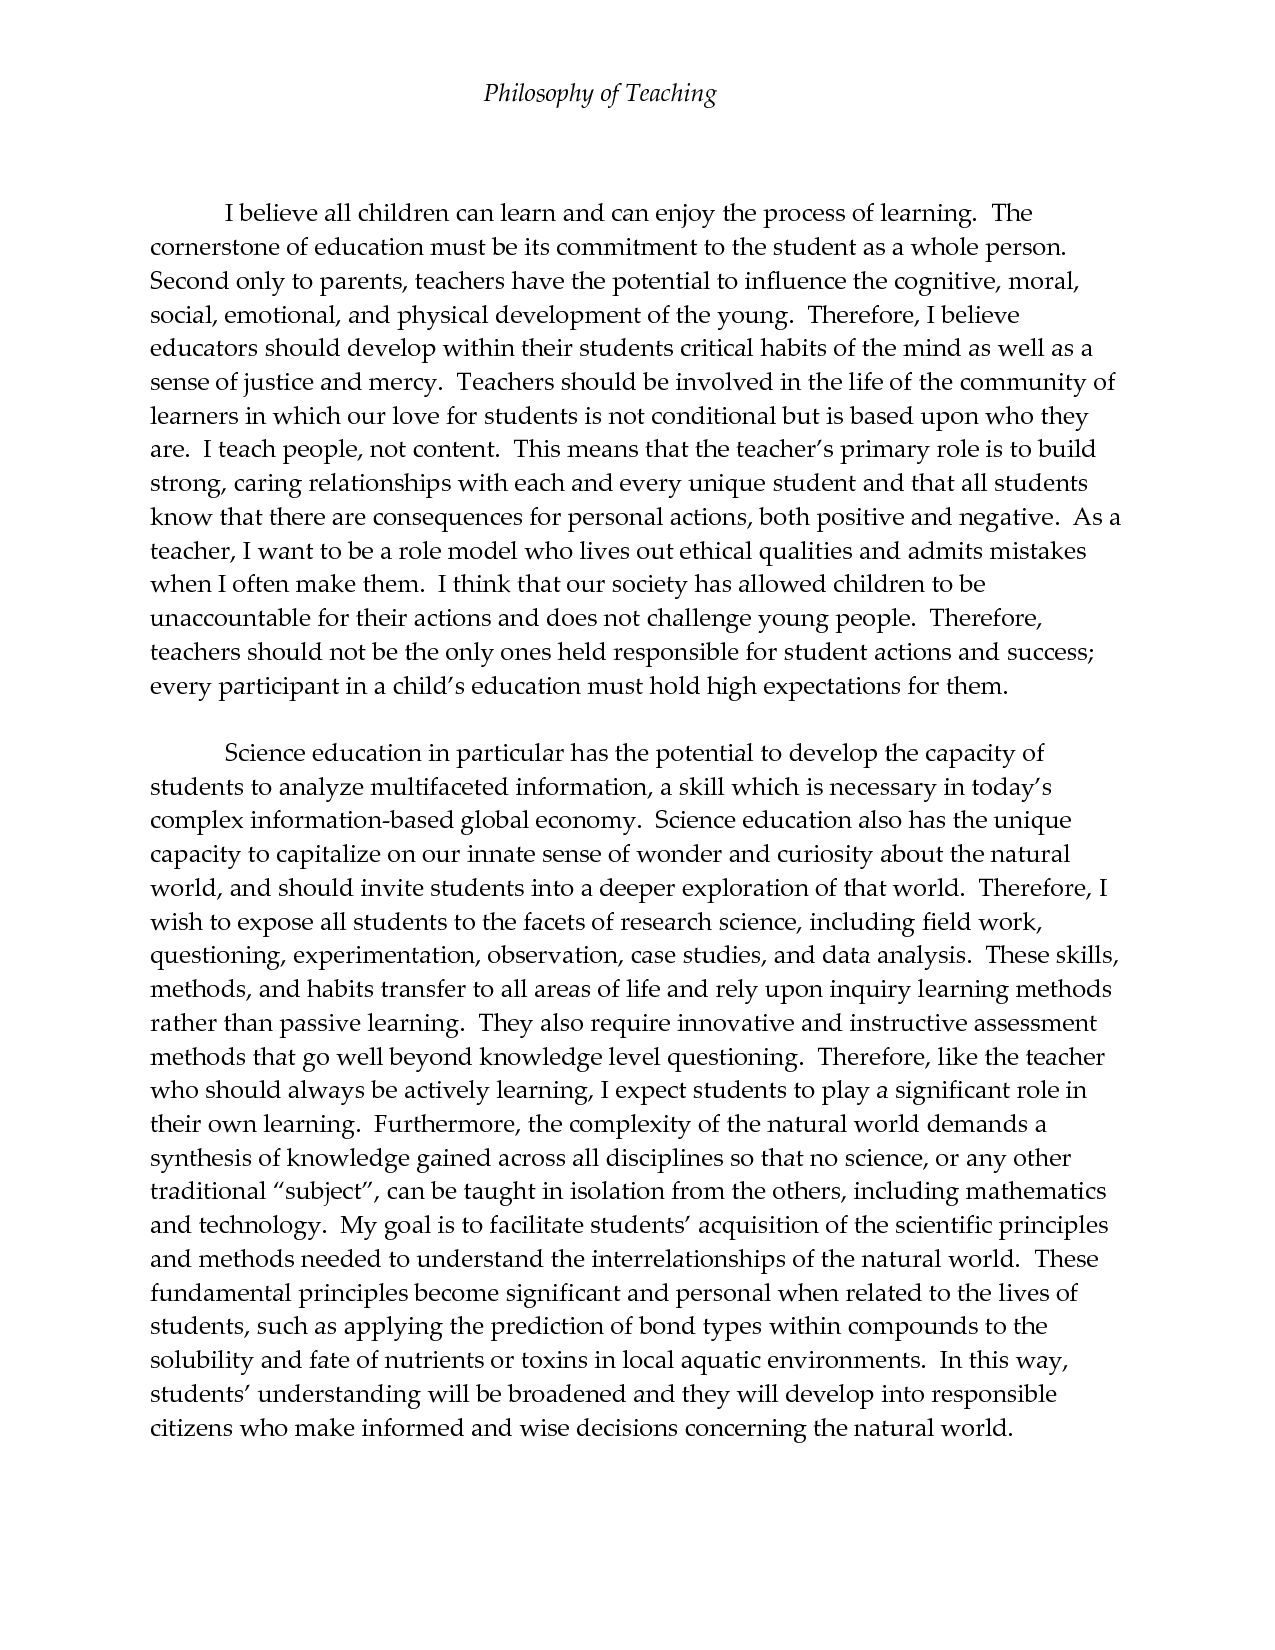 8663 sample personal philosophy of education cda 8663 sample personal philosophy of education